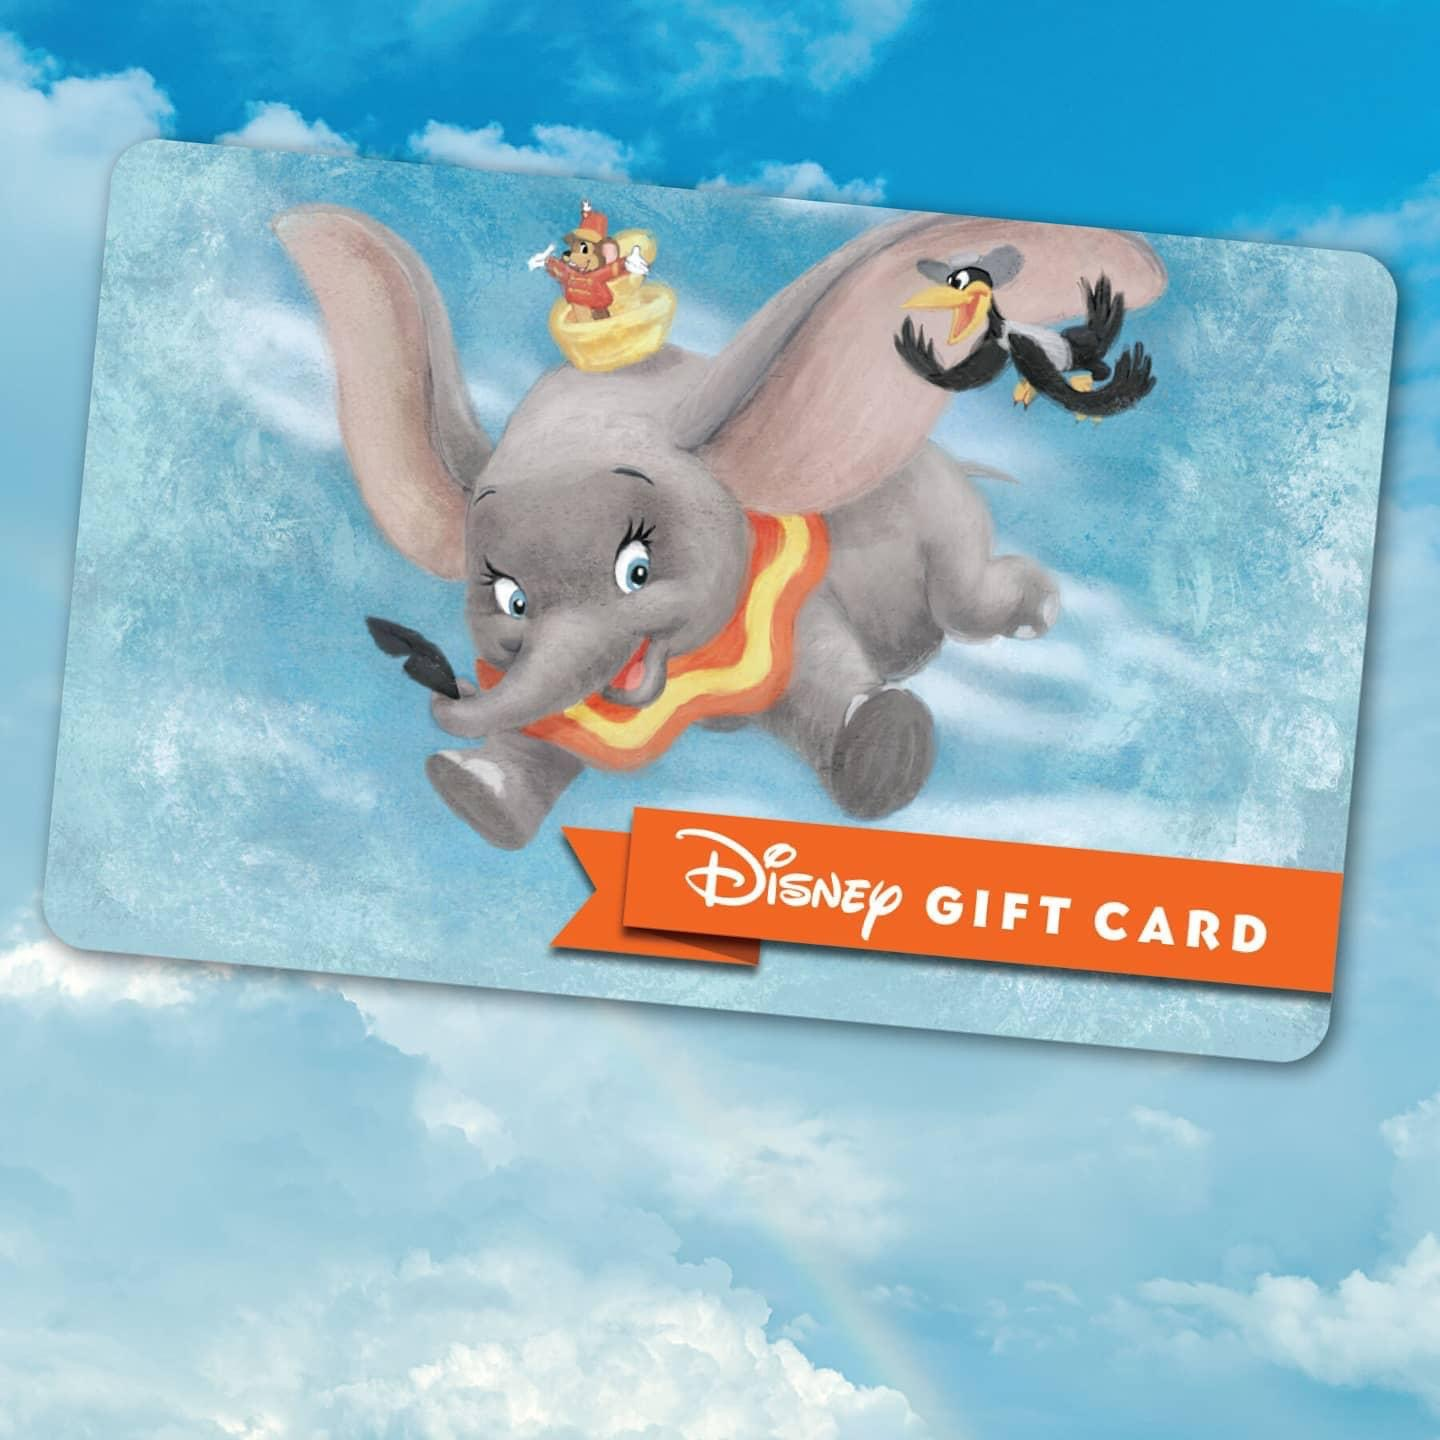 New Disney Gift Card Designs for Your Holiday Gift Giving from shopDisney! 8